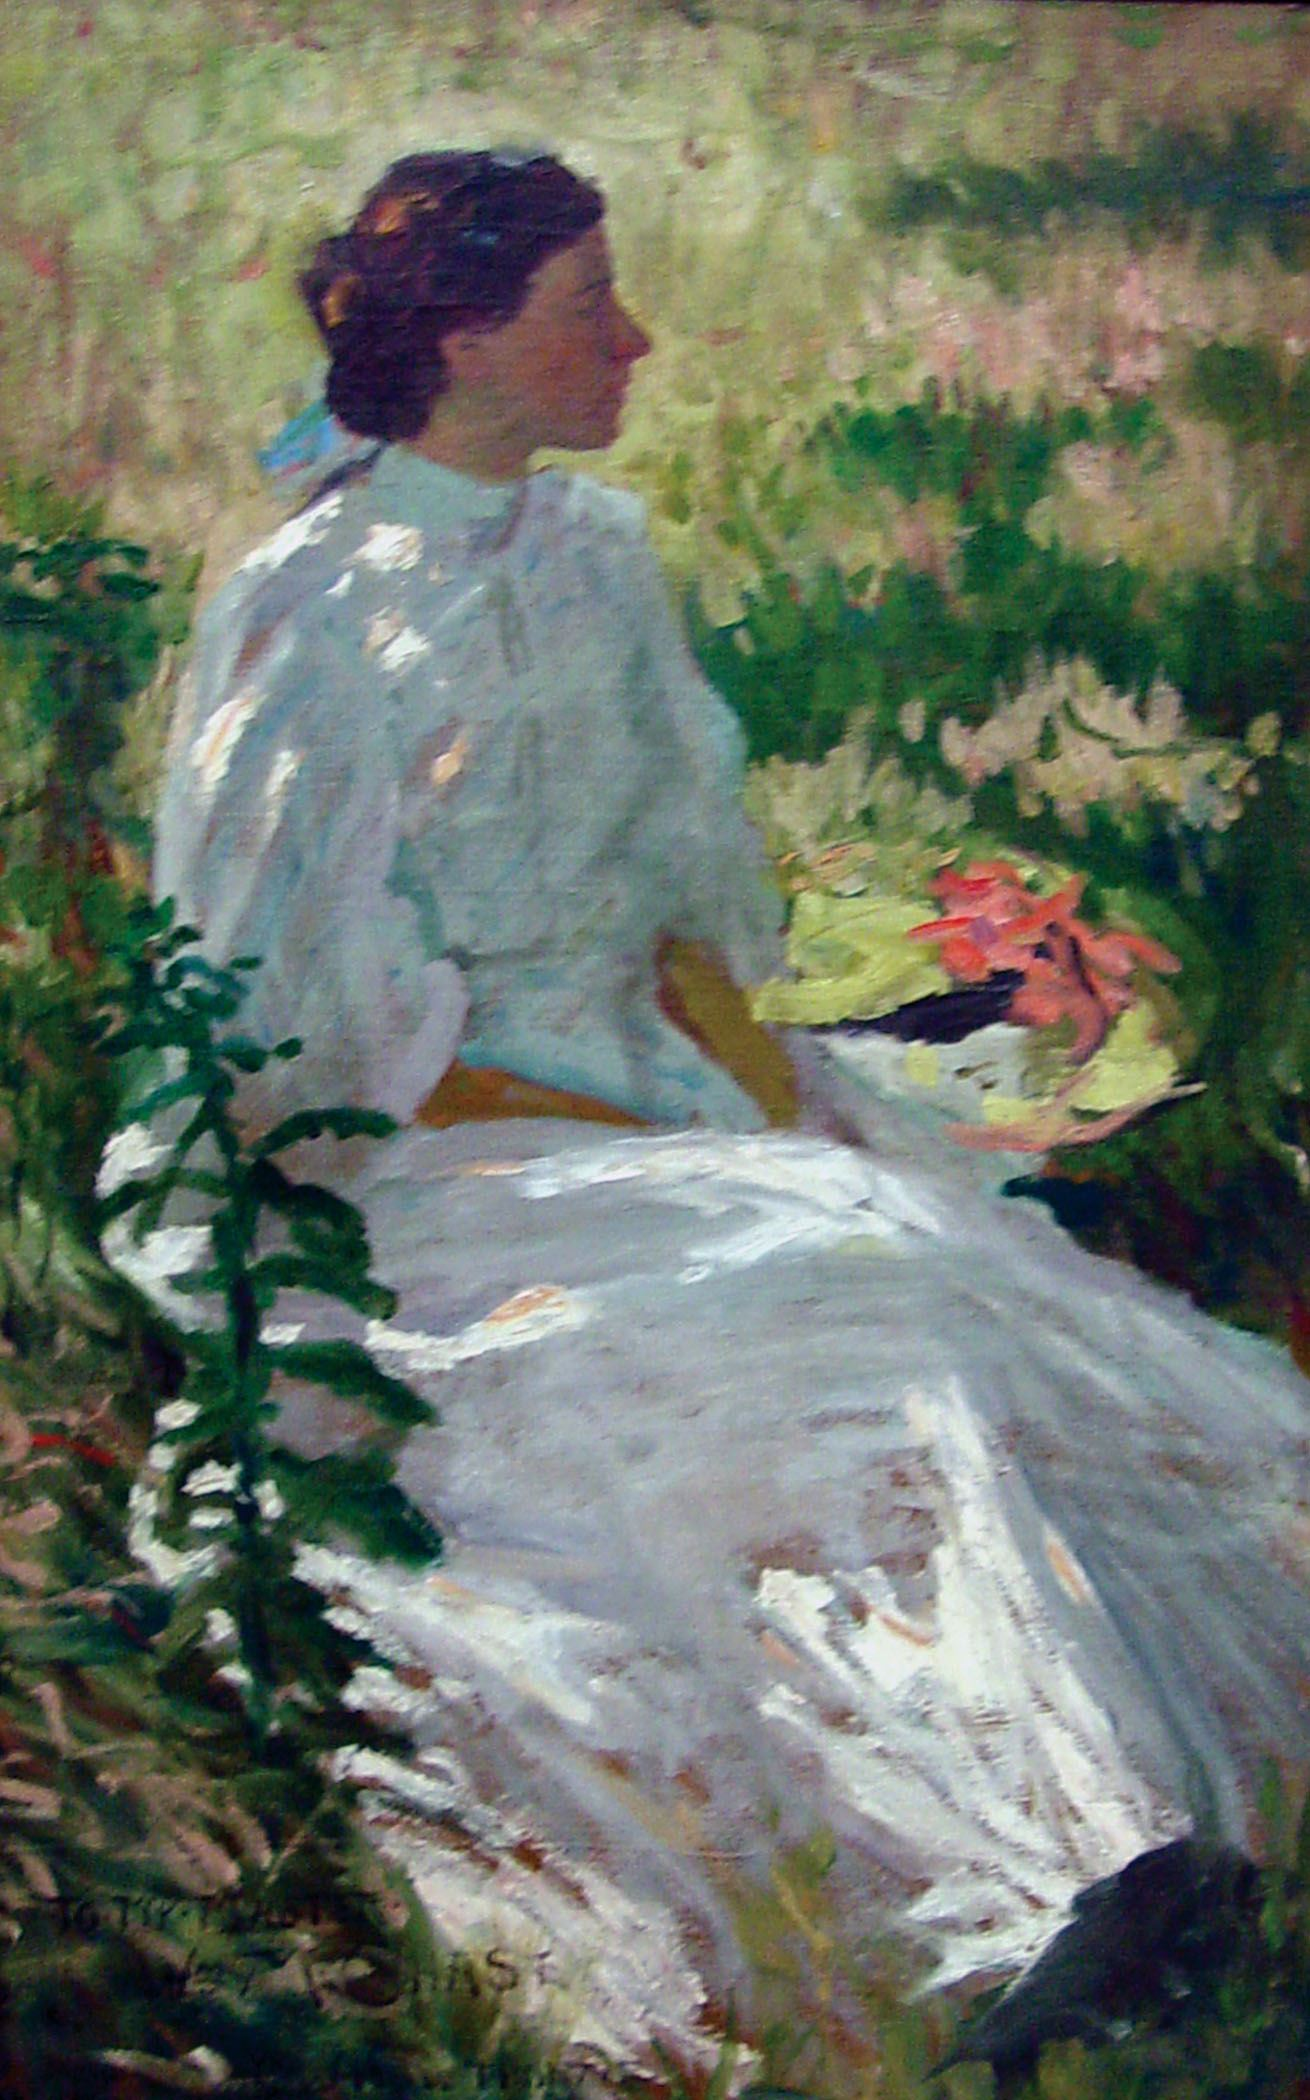 an impressionistic painting of a seated woman in white, turned in profile, painted out of doors